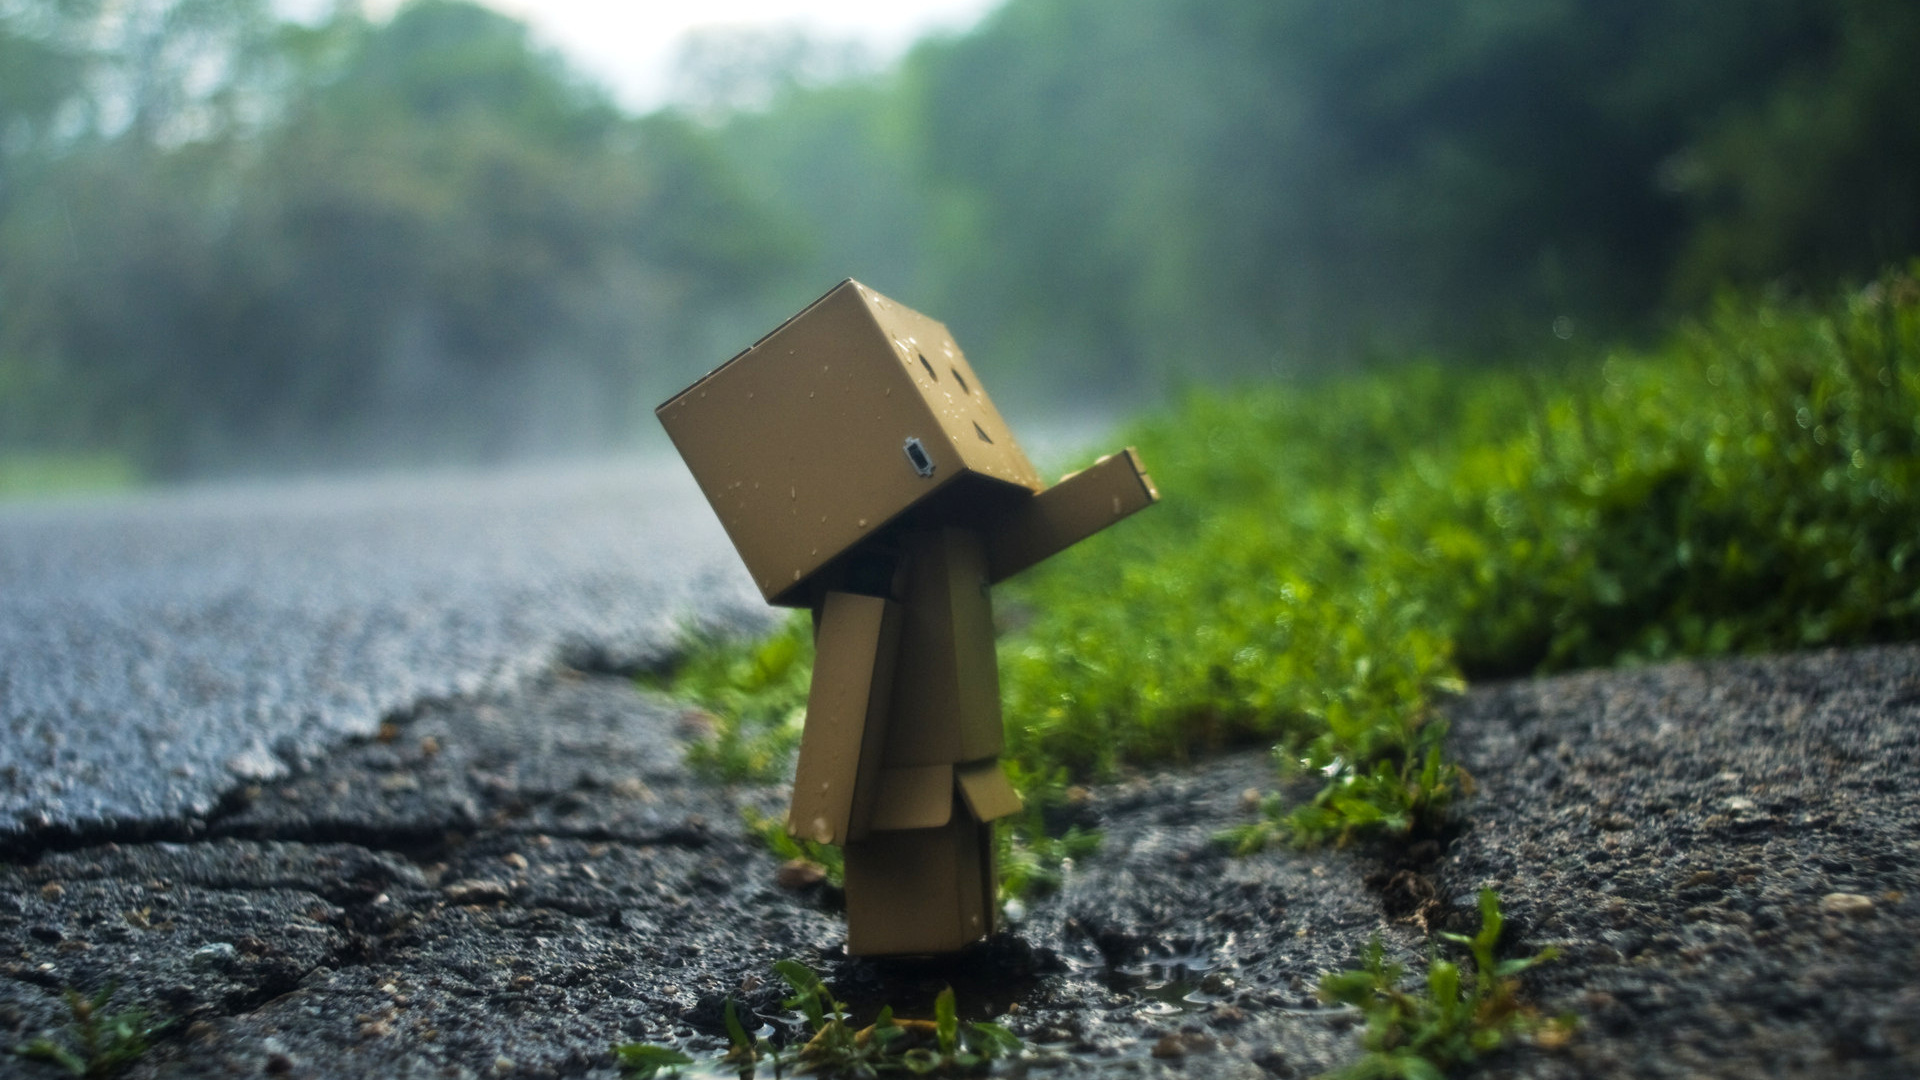 Danbo Hd Wallpaper My Desktop Windows 7 386732 Hd